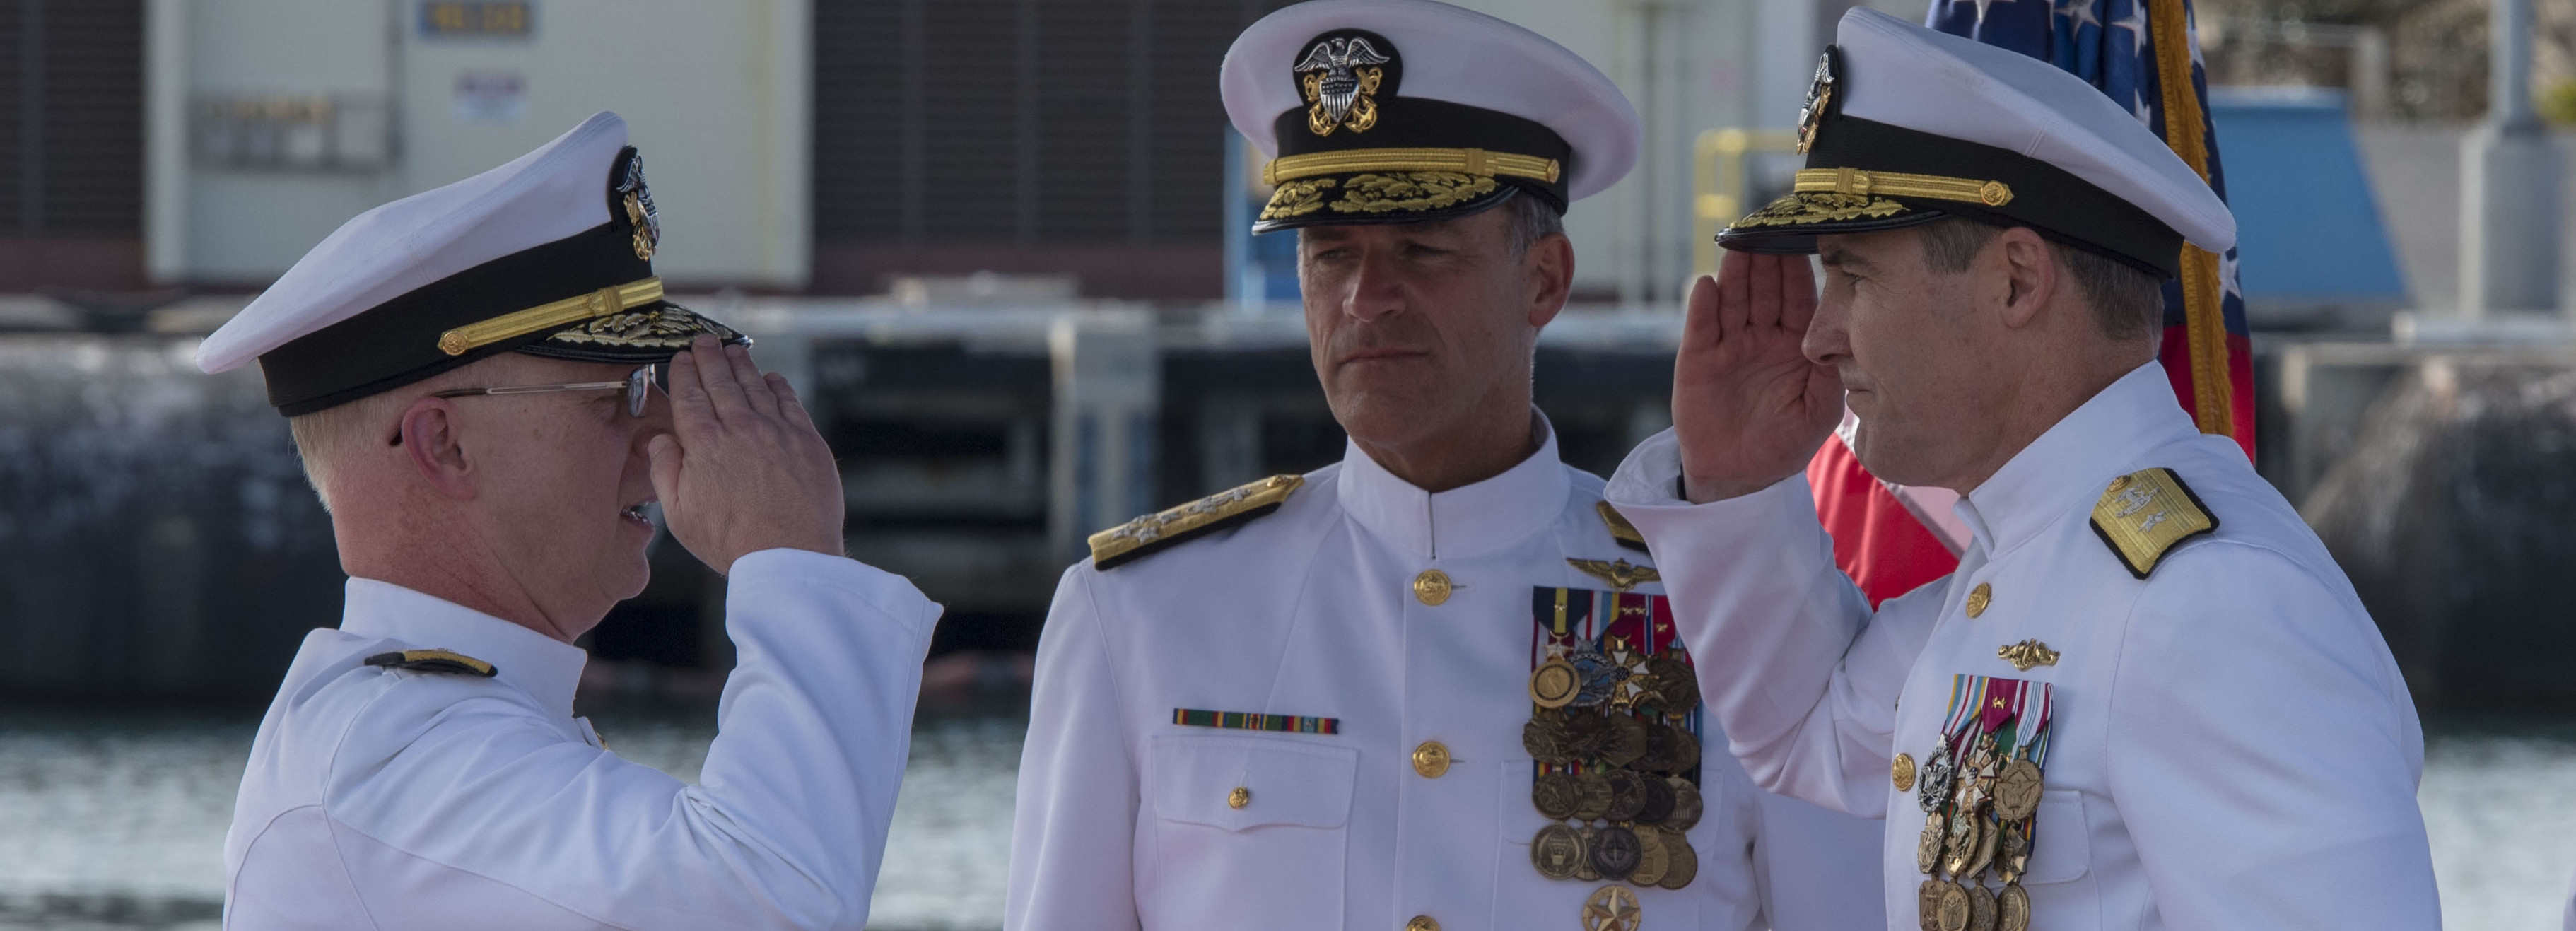 190221-N-KV911-0168 PEARL HARBOR (Feb. 21, 2019) - Rear Adm. Blake Converse, right, relieves Rear Adm. Daryl L. Caudle, left, as the commander of Submarine Force, U.S. Pacific Fleet during a change of command ceremony aboard the Virginia-class fast attack submarine USS Mississippi (SSN 782) in Joint Base Pearl Harbor-Hickam. (U.S. Navy photo by Mass Communication Specialist 2nd Class Shaun Griffin/Released)